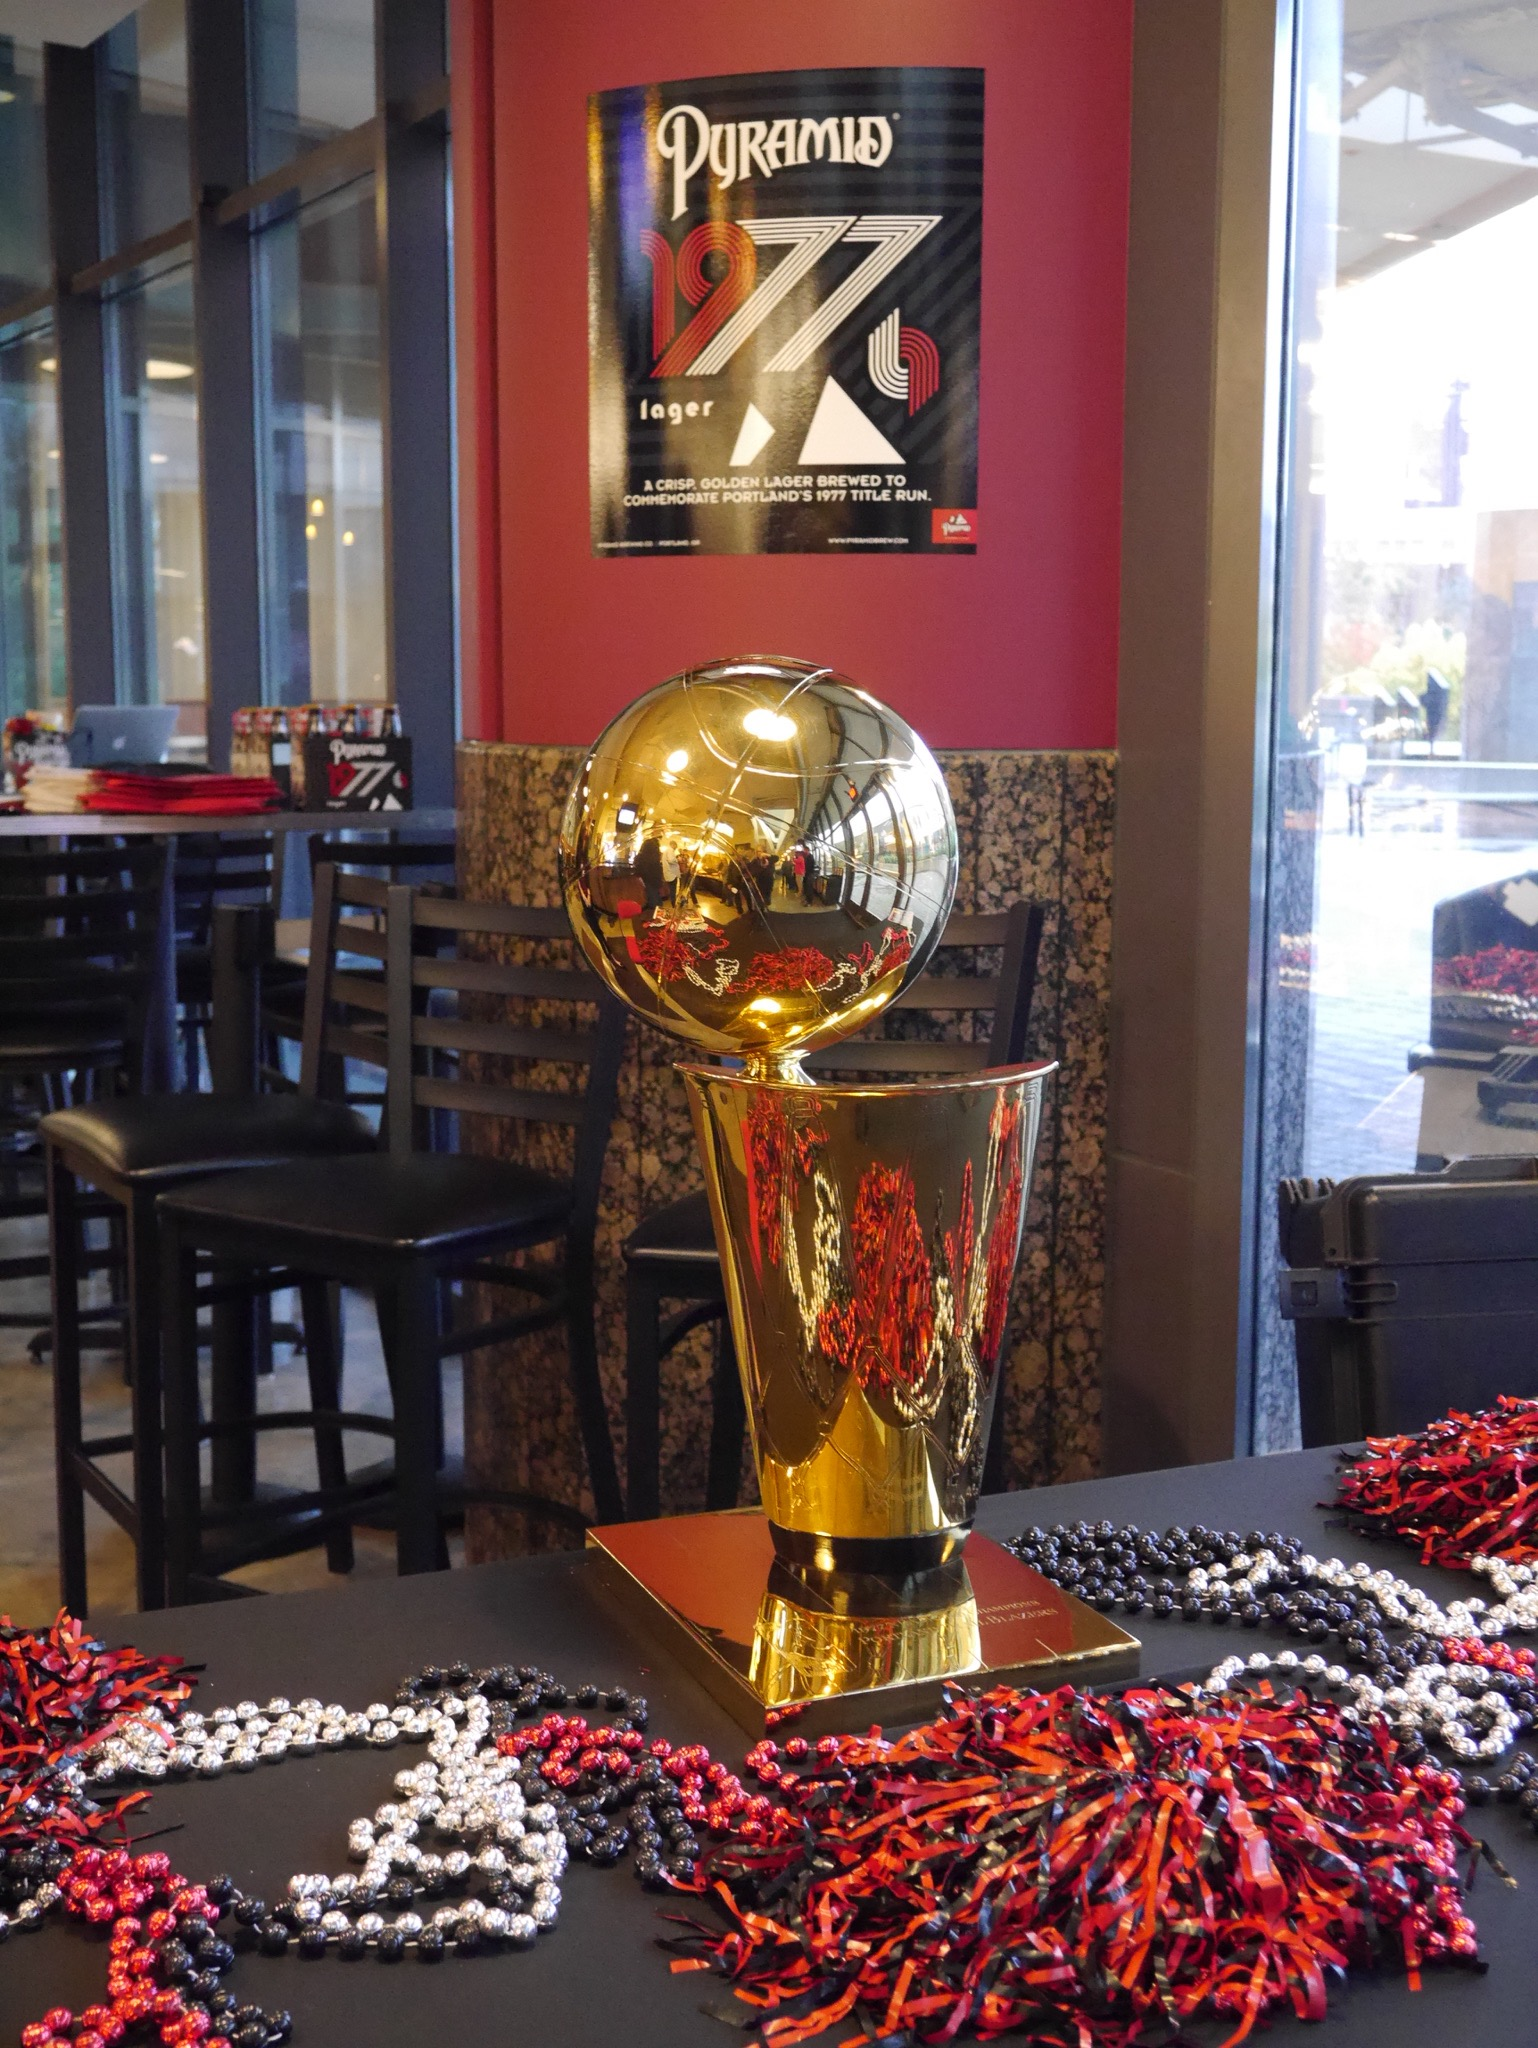 The 1977 Portland Trail Blazers NBA Championship Trophy. (photo by Cat Stelzer)